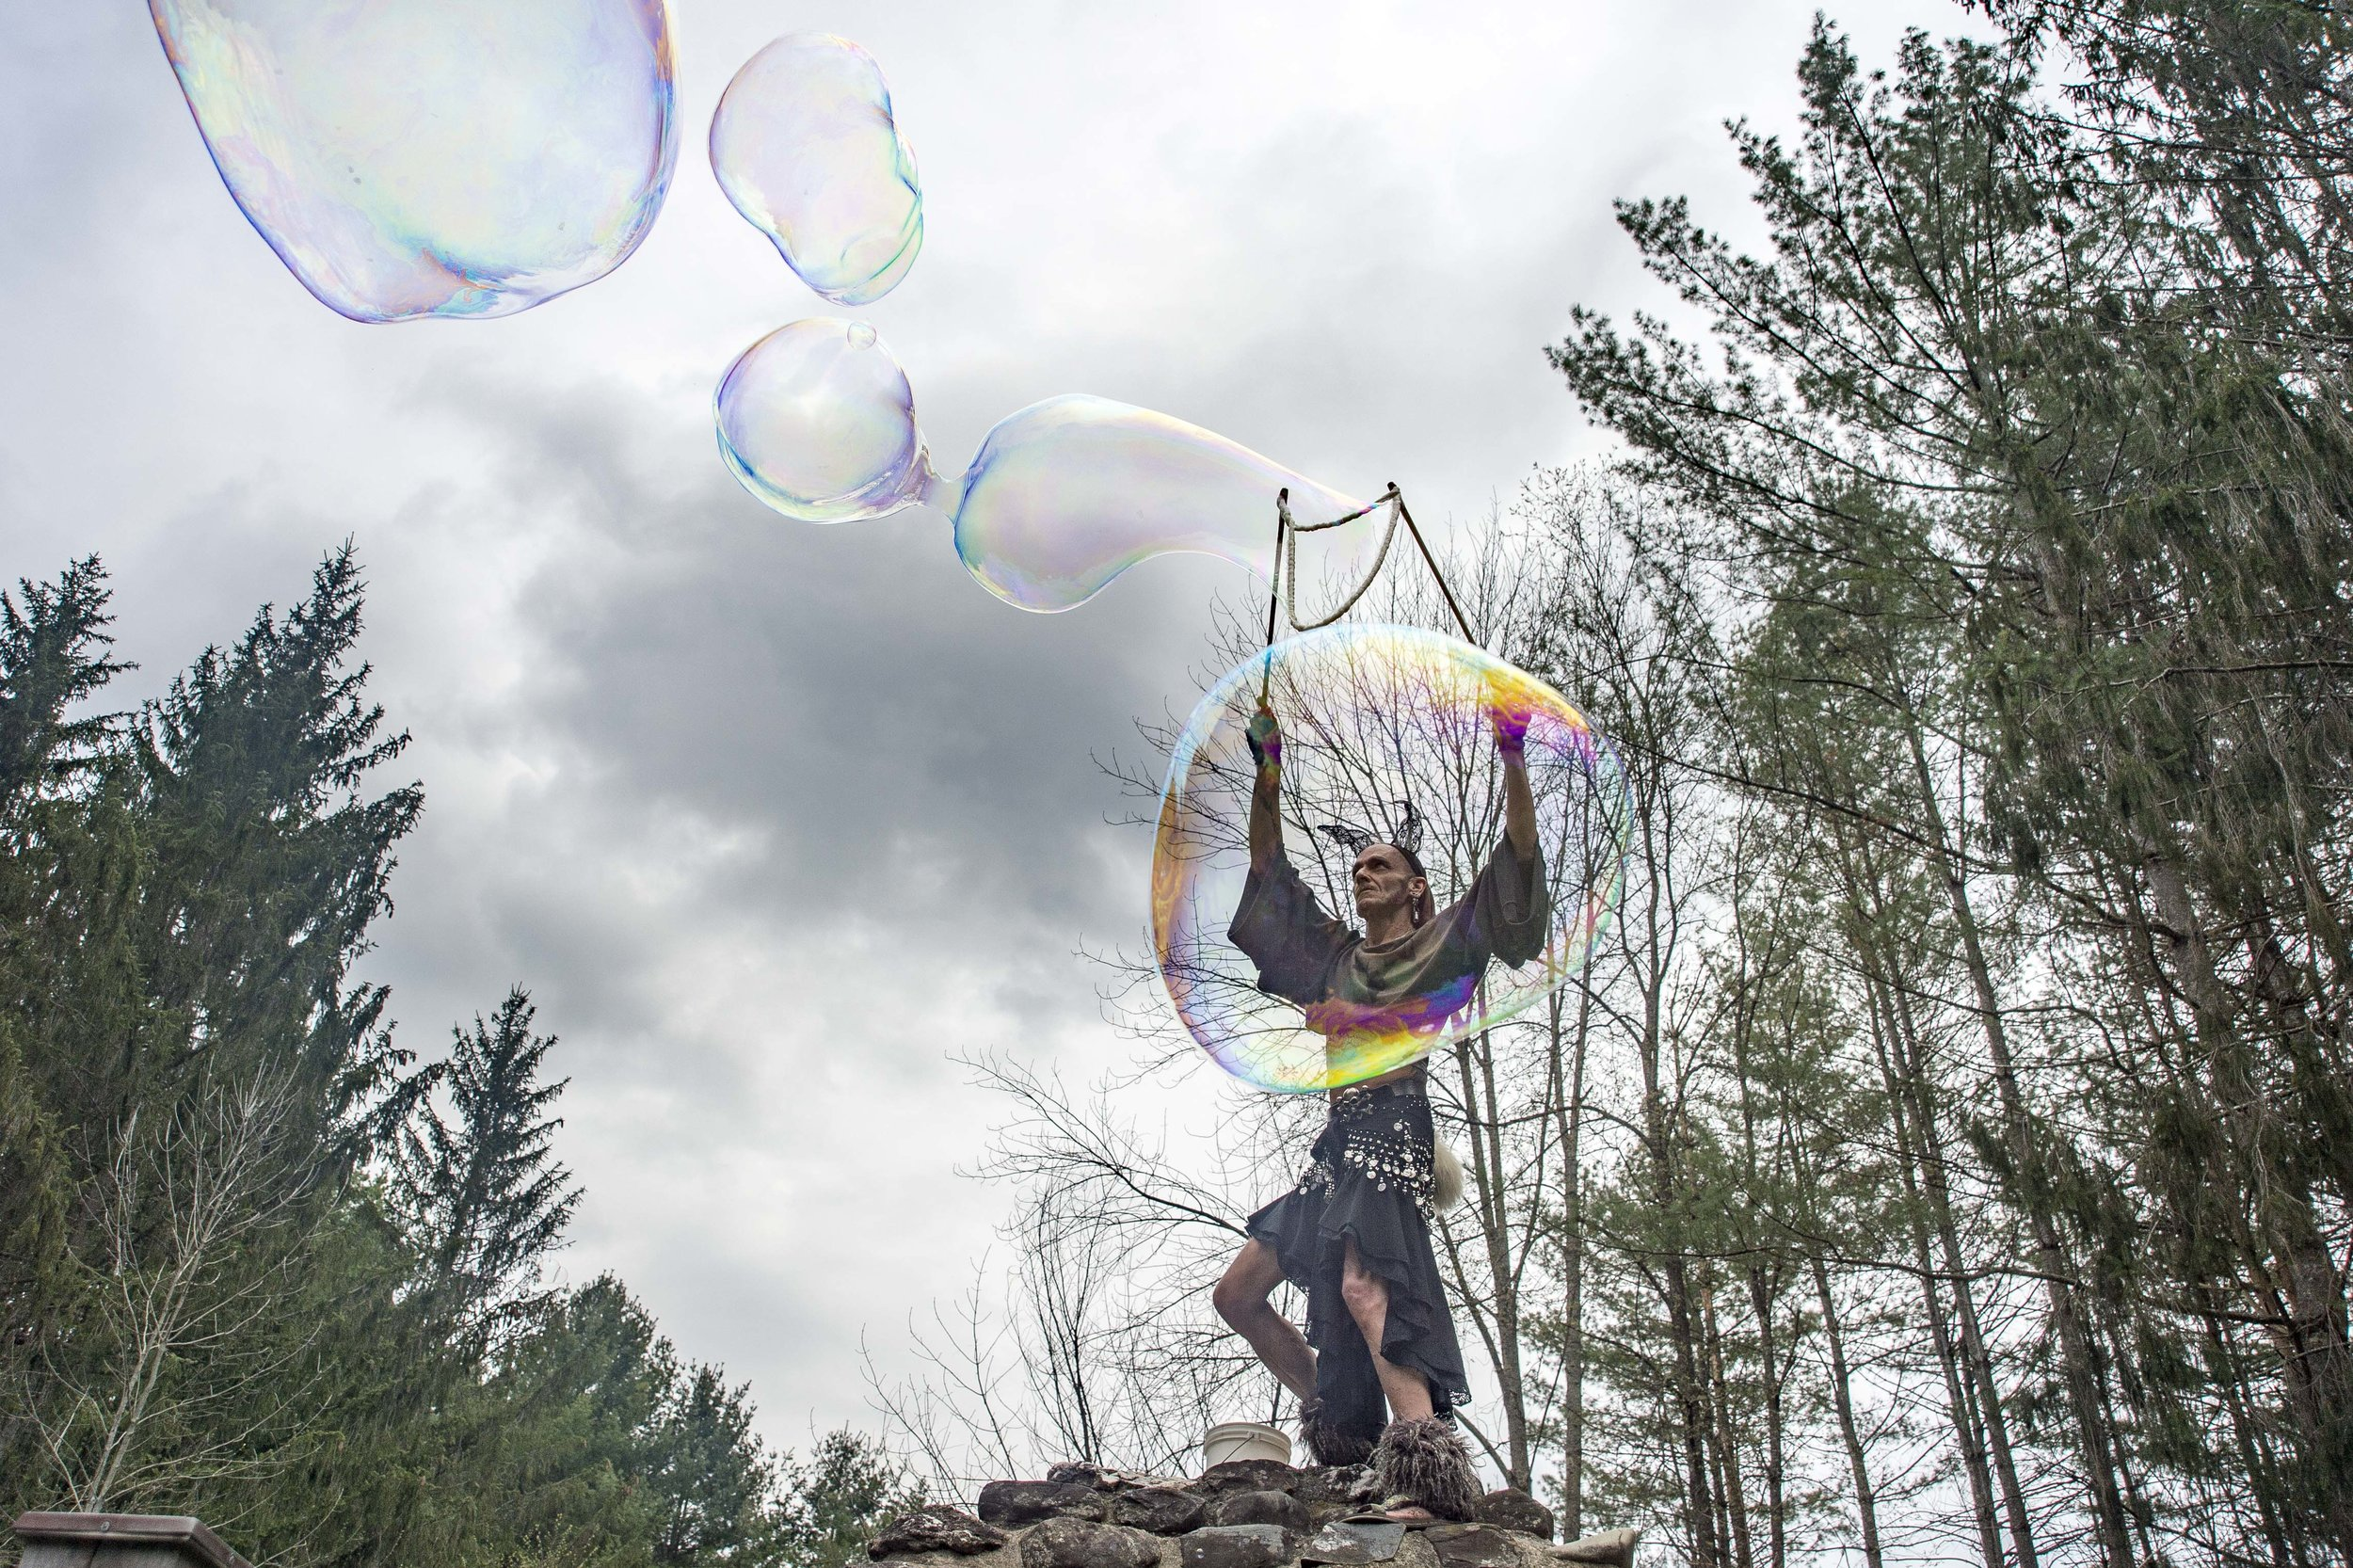 William Bridwell releases extra large bubbles into the crowd during the annual All Species Day Parade in Montpelier's Hubbard Park on May 6th, 2018.